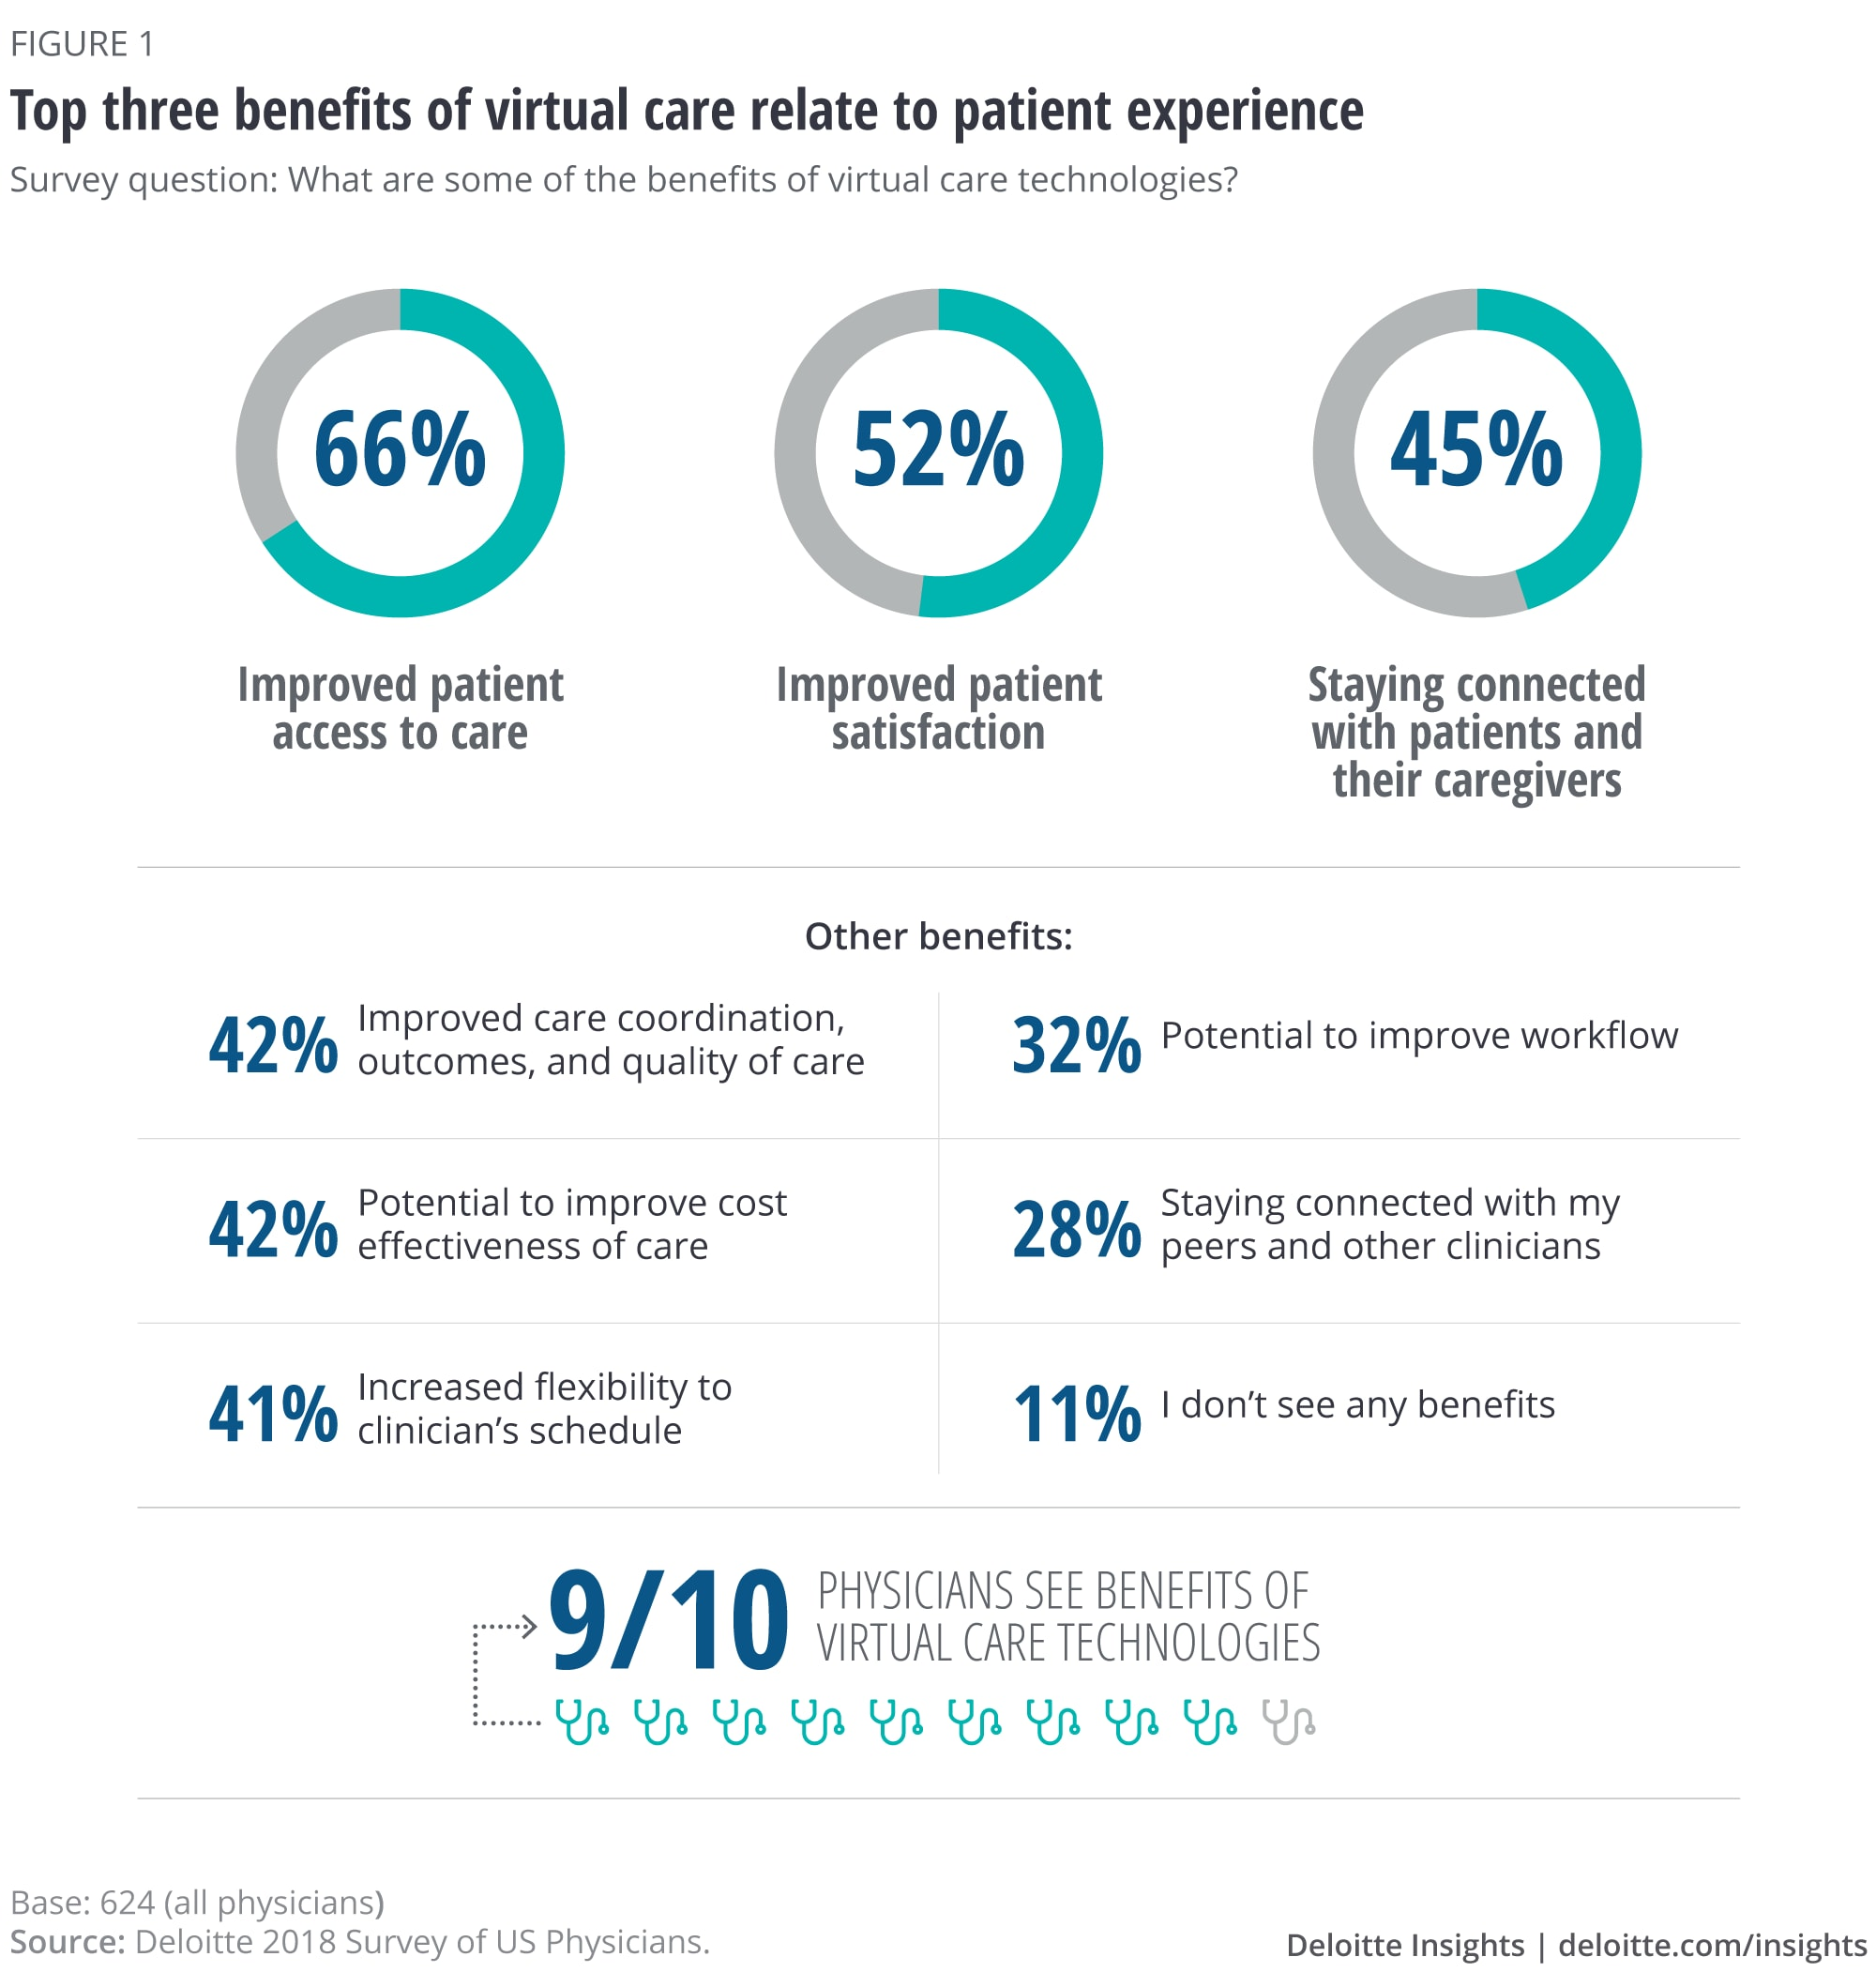 Top three benefits of virtual care are about patient experience